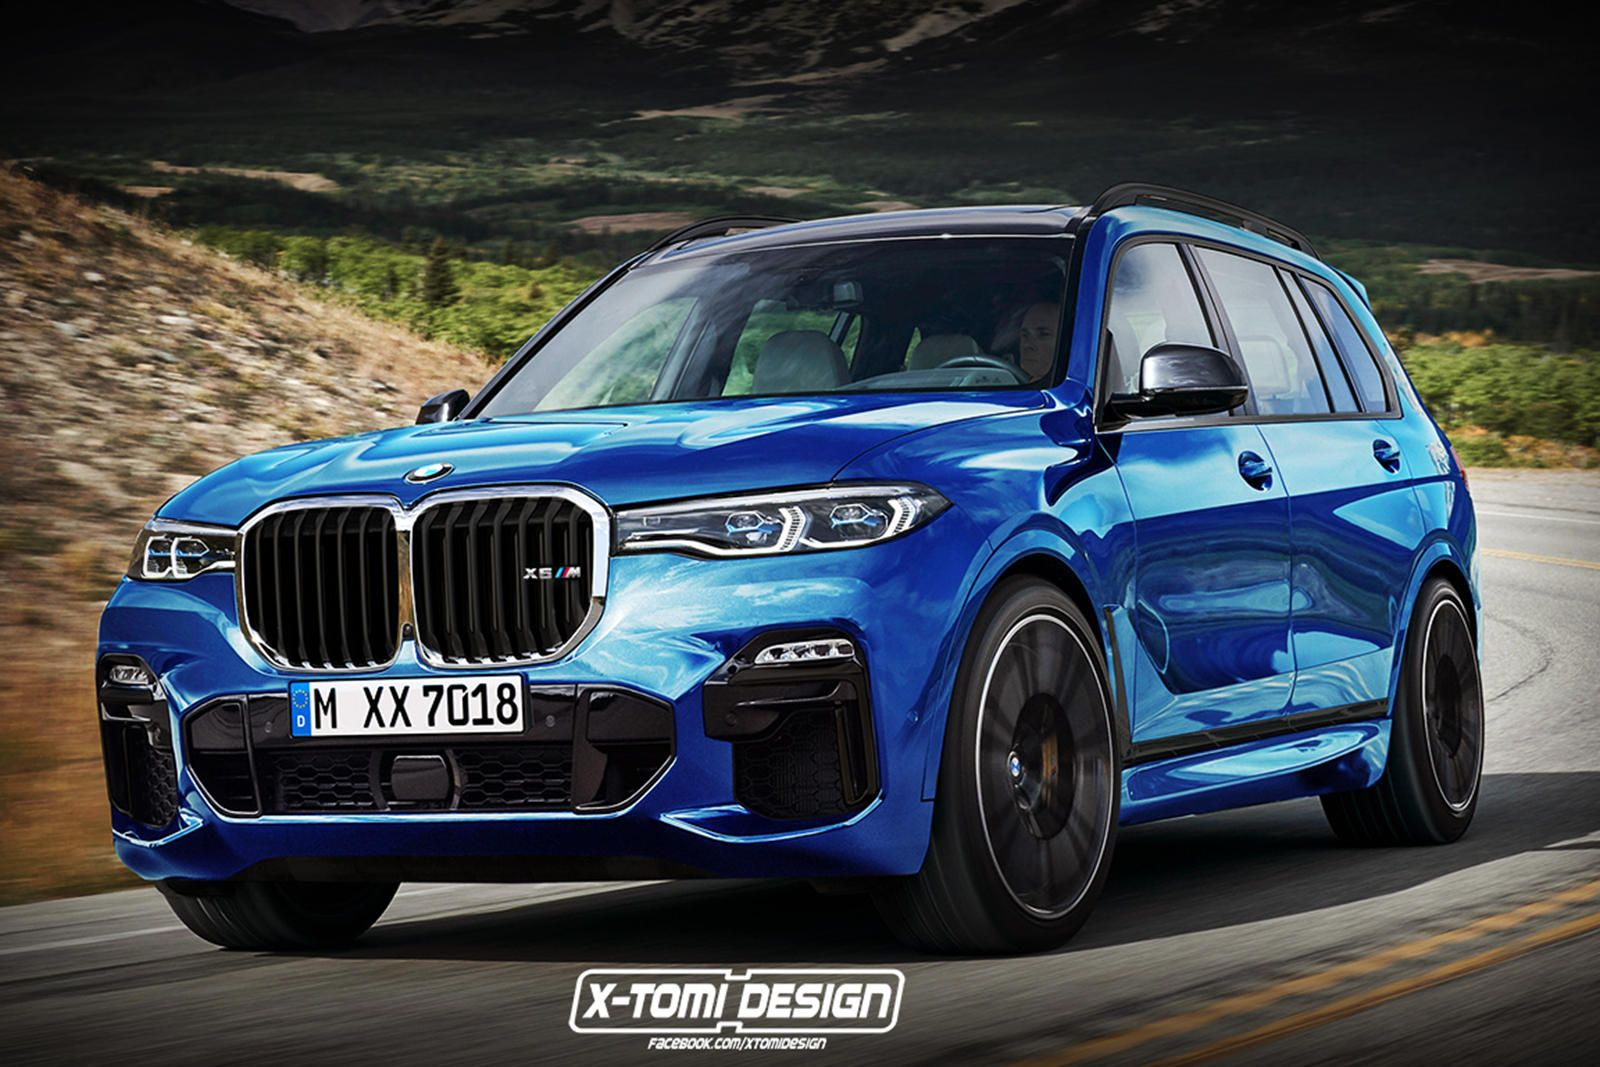 Bmw X7 M Was Considered For Production Plans Scrapped For Now